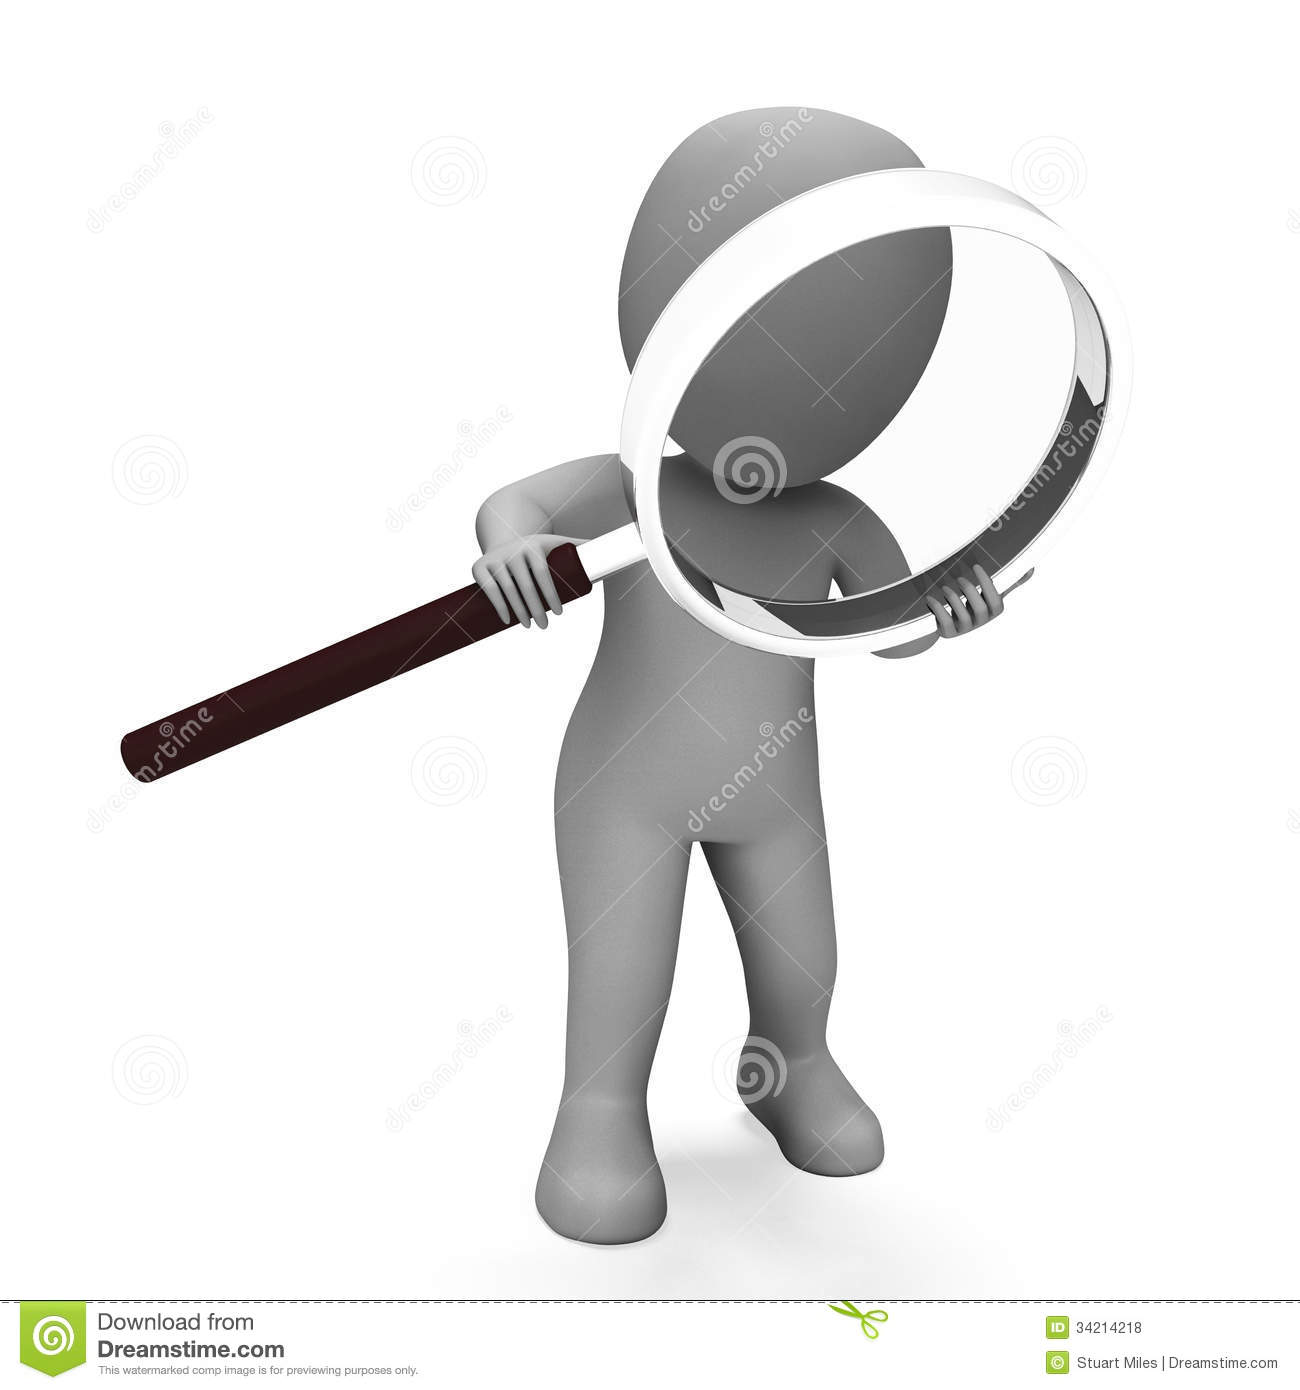 Looking Magnifier Character Shows Examining Scrutinize And